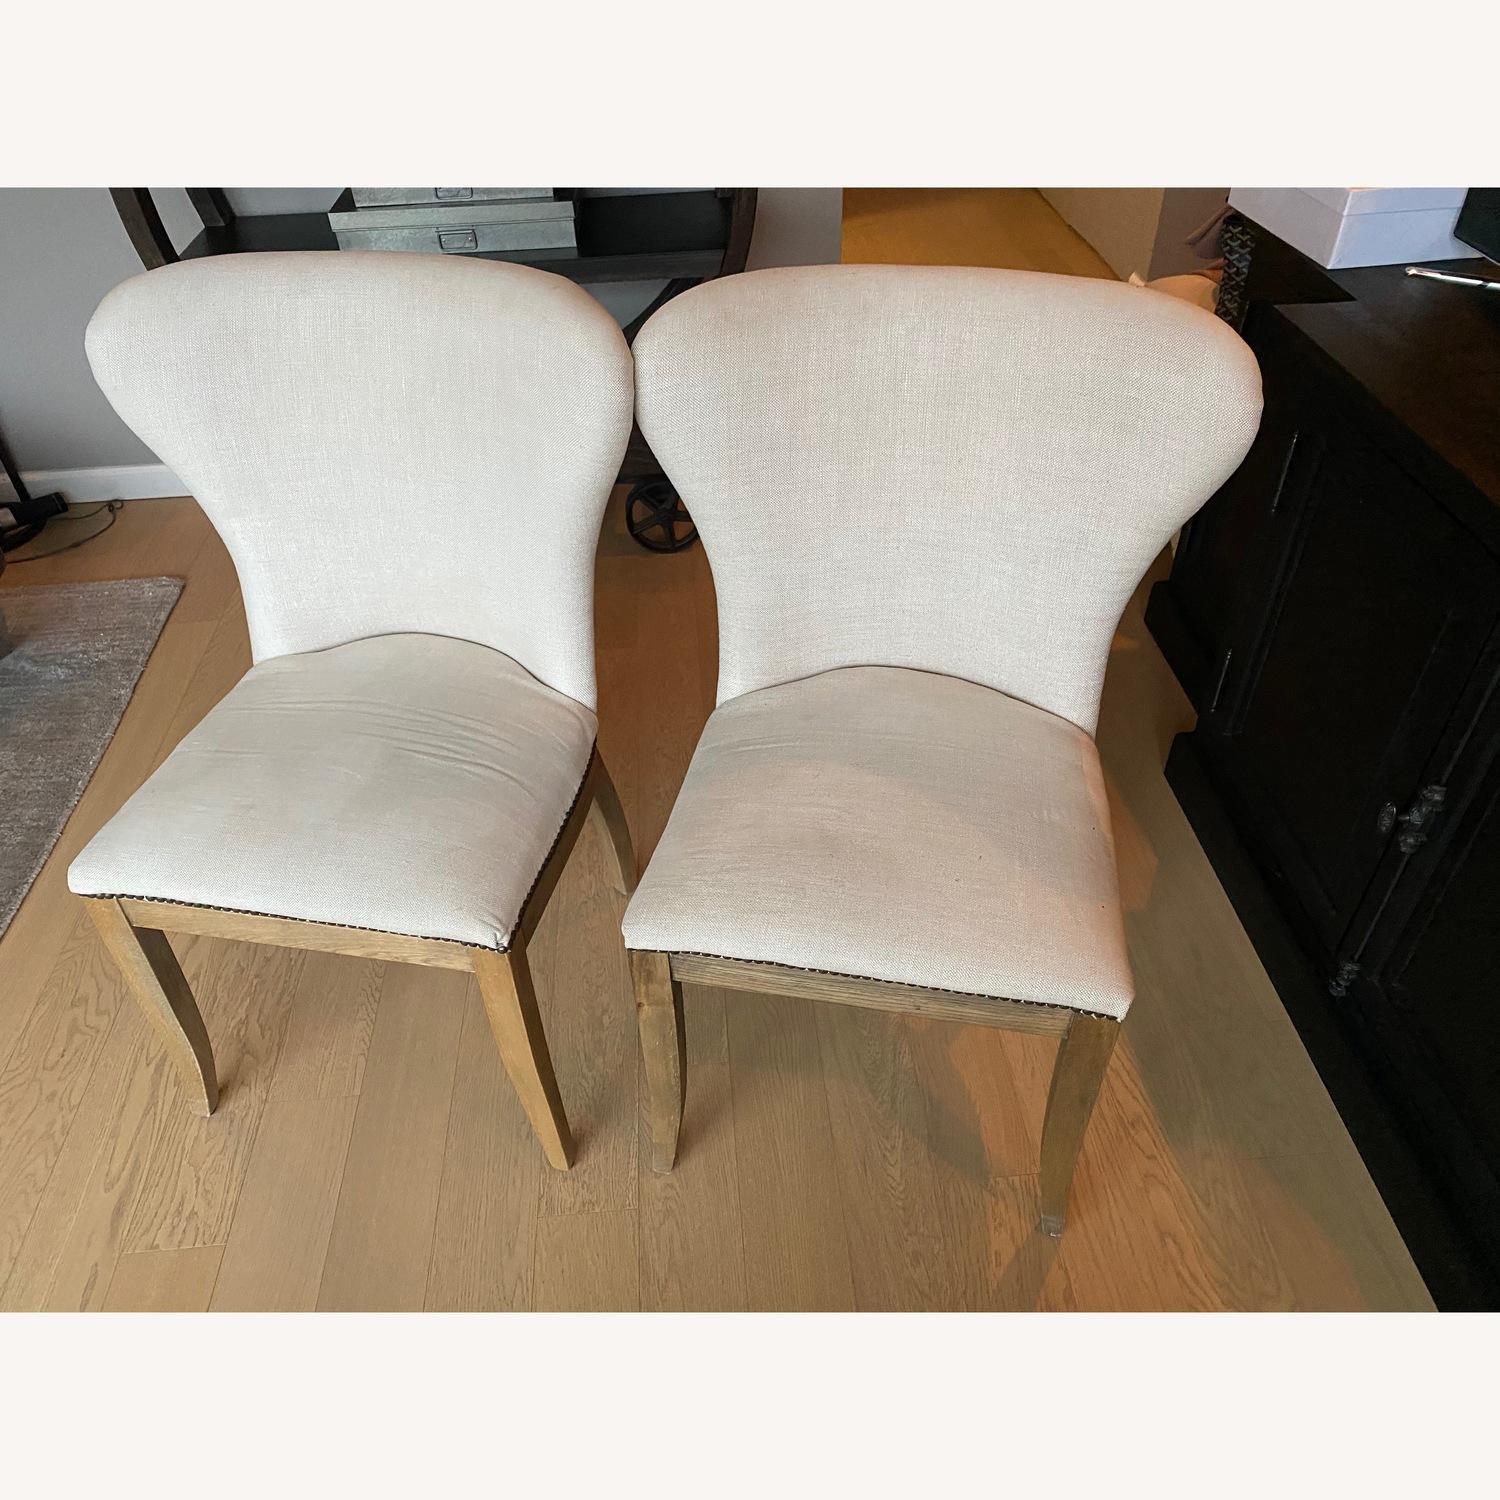 Restoration Hardware Dining Table with 2 Chairs - image-6